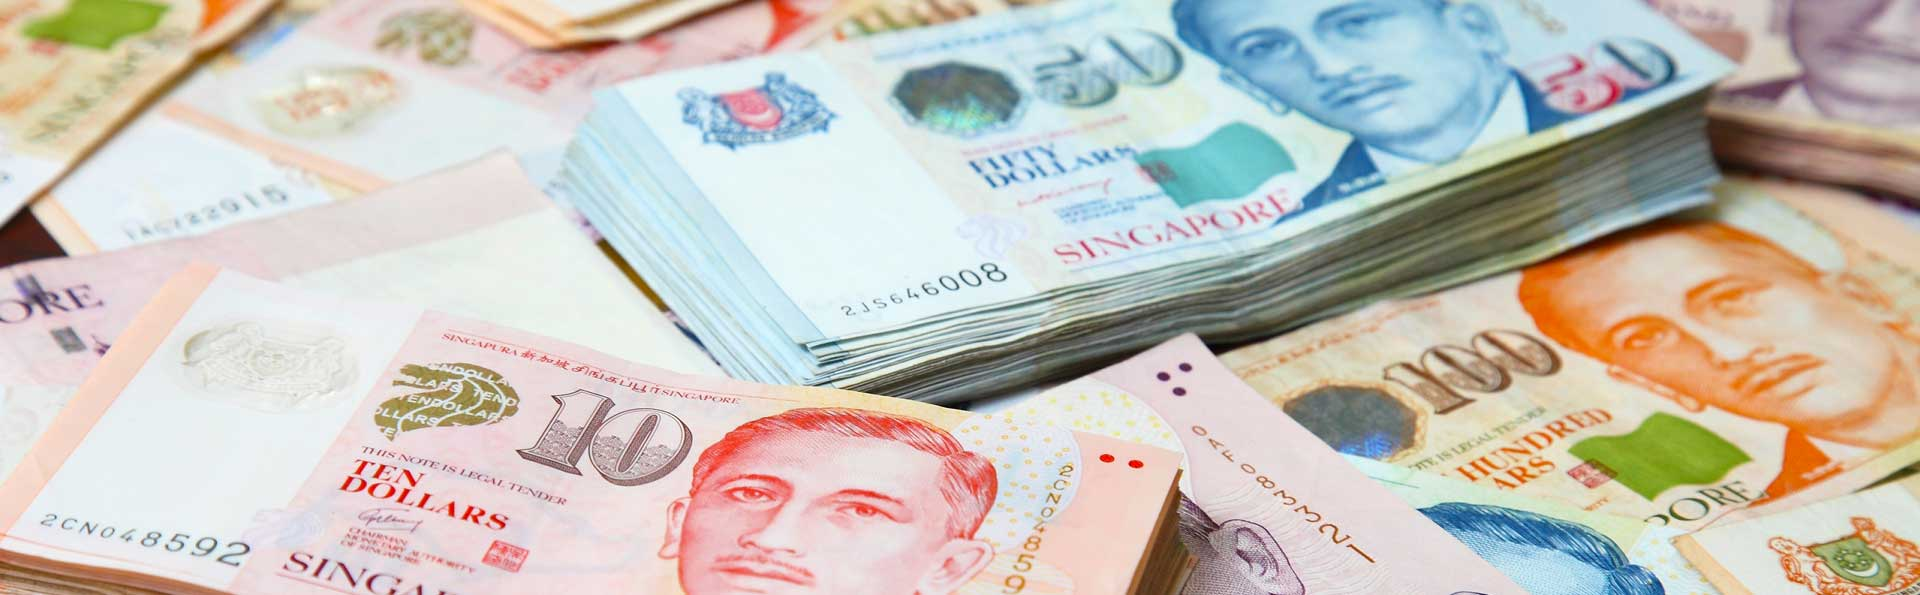 Understanding Your Bills and Charges in Singapore